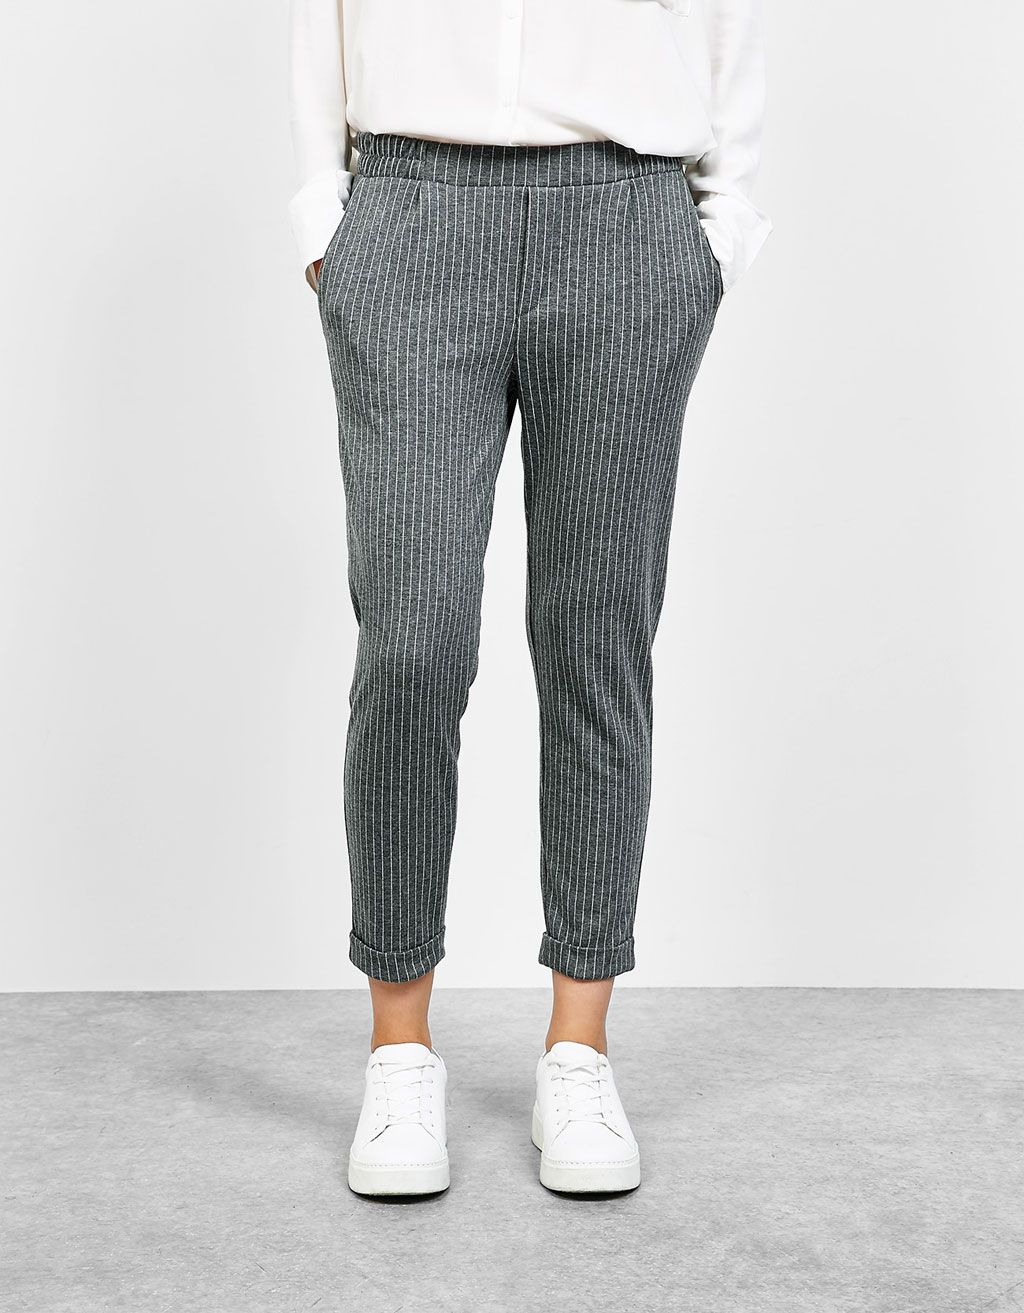 Pantalon Ootd Fashion Fashion Jogger Inspi Avec Pinces Tailleur qSIBSw